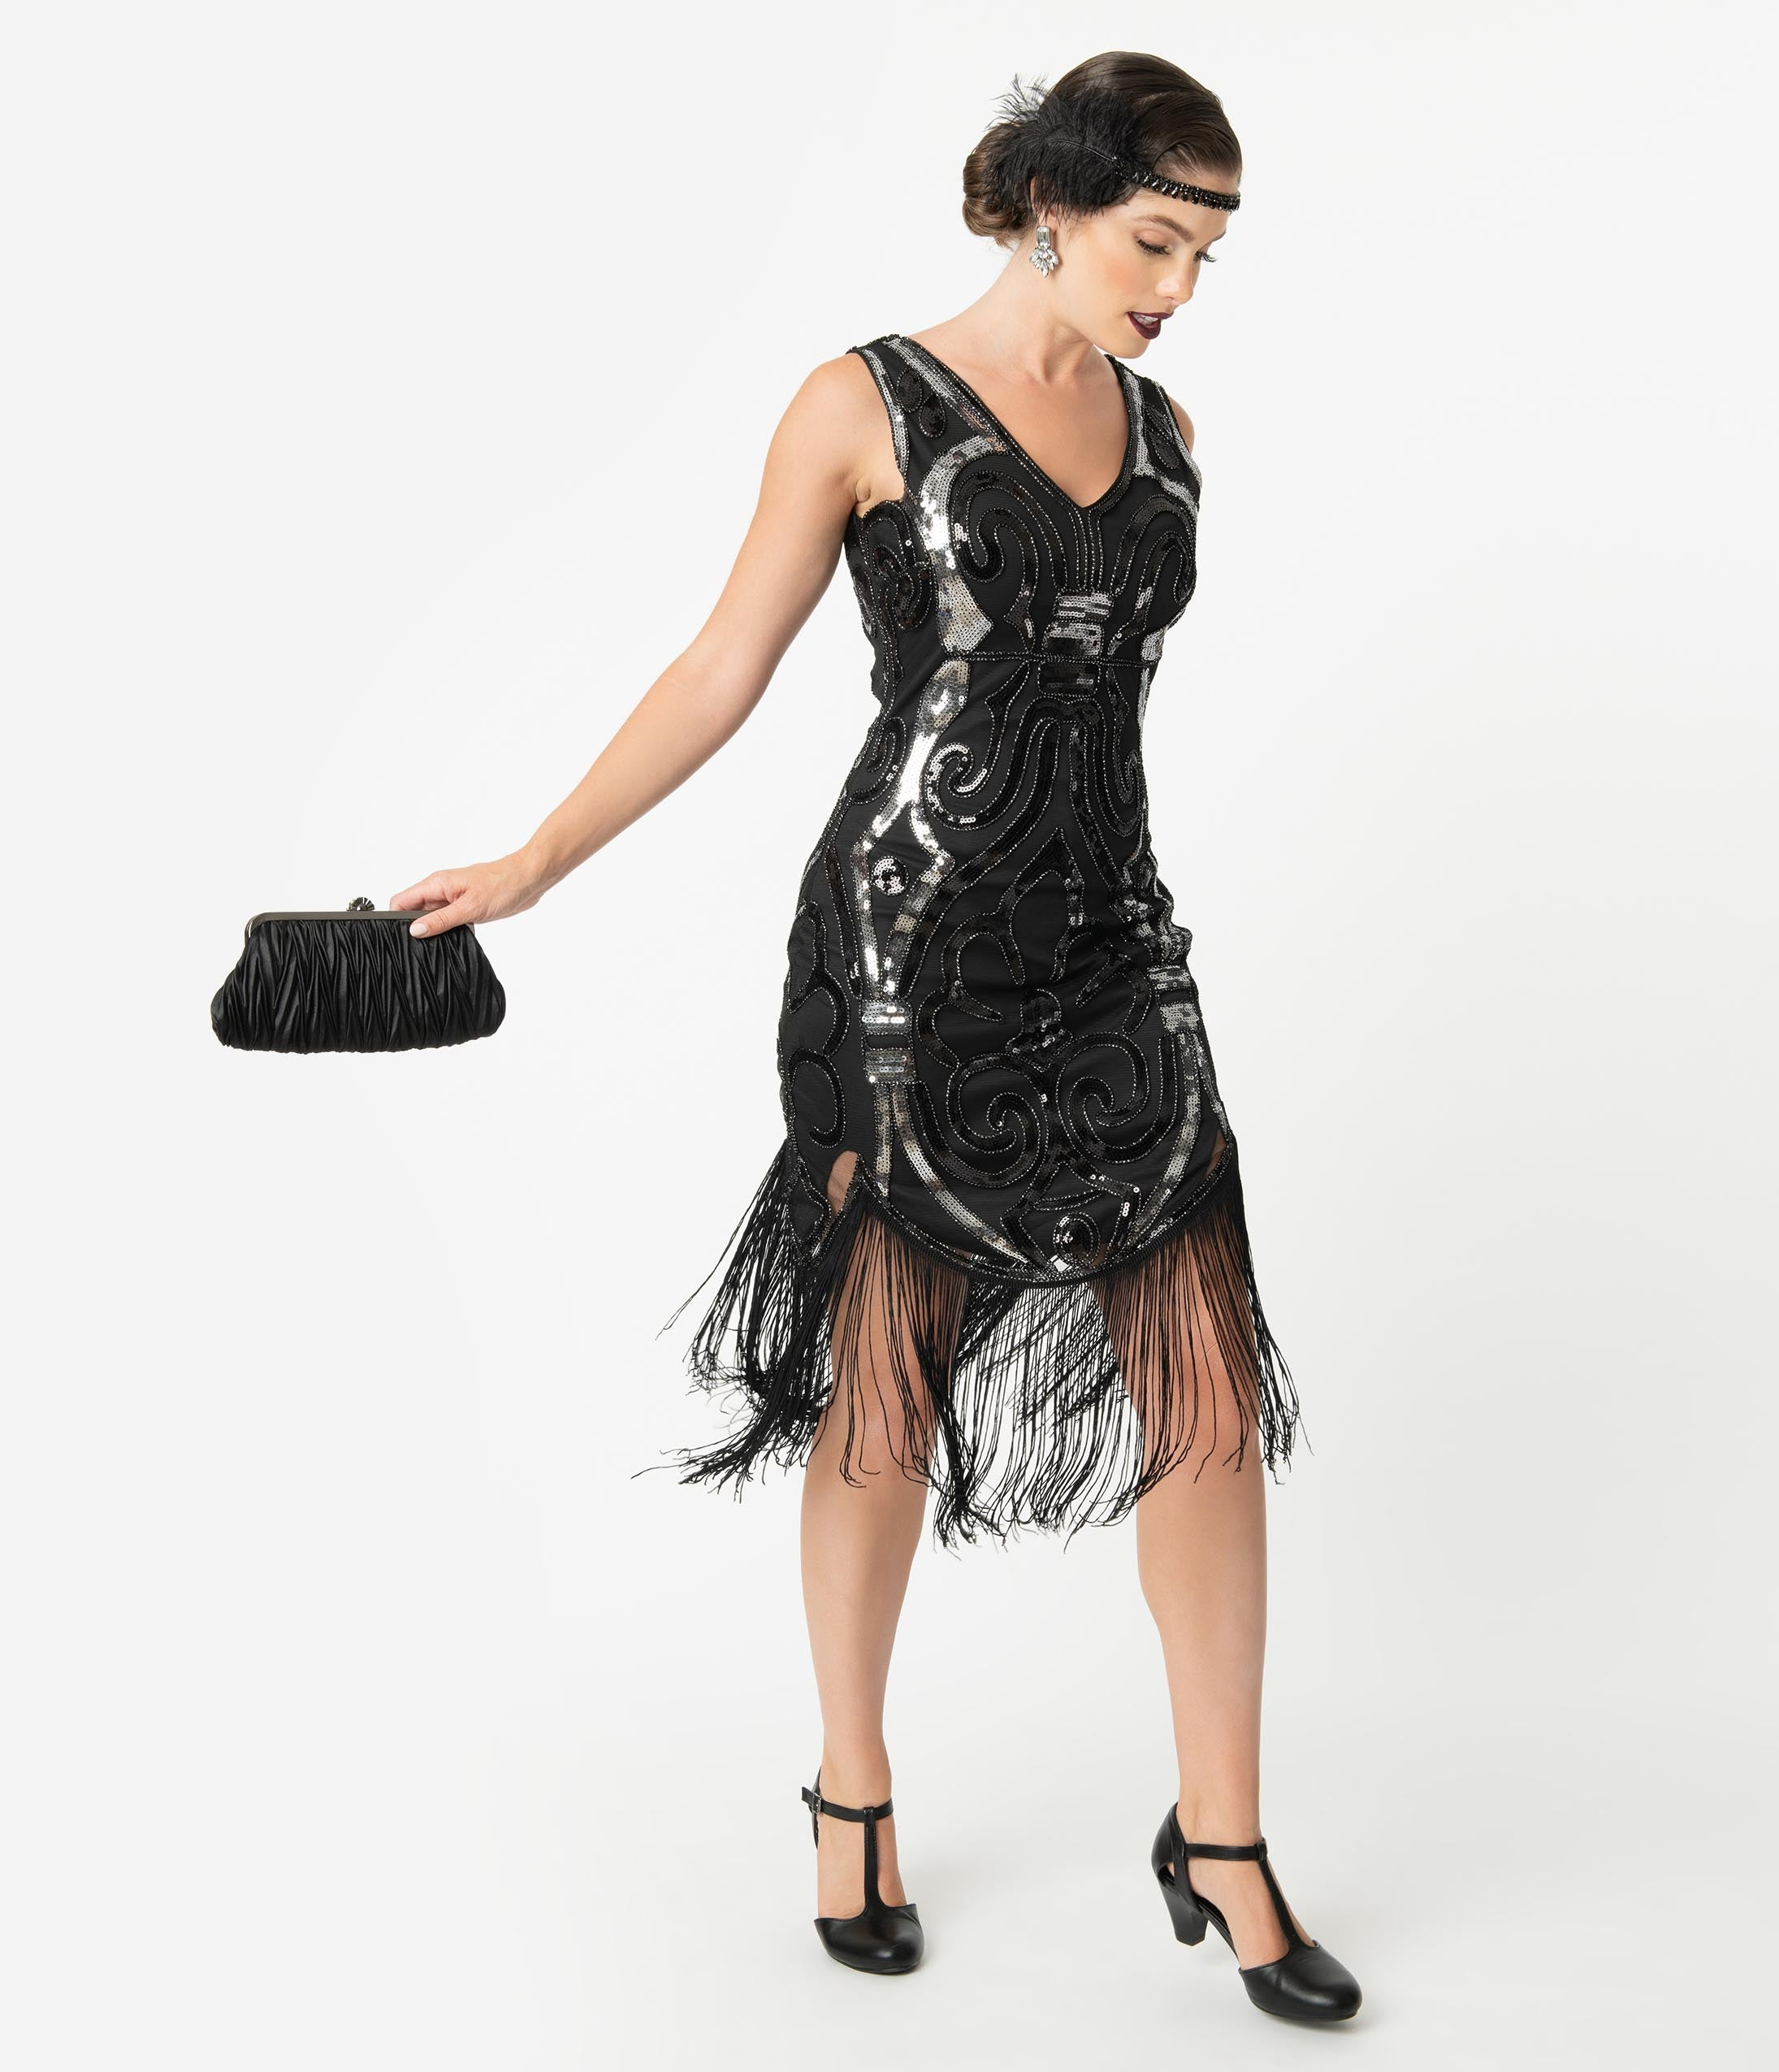 Best 1920s Prom Dresses – Great Gatsby Style Gowns Unique Vintage 1920S Black  Silver Beaded Josseline Fringe Cocktail Dress $98.00 AT vintagedancer.com